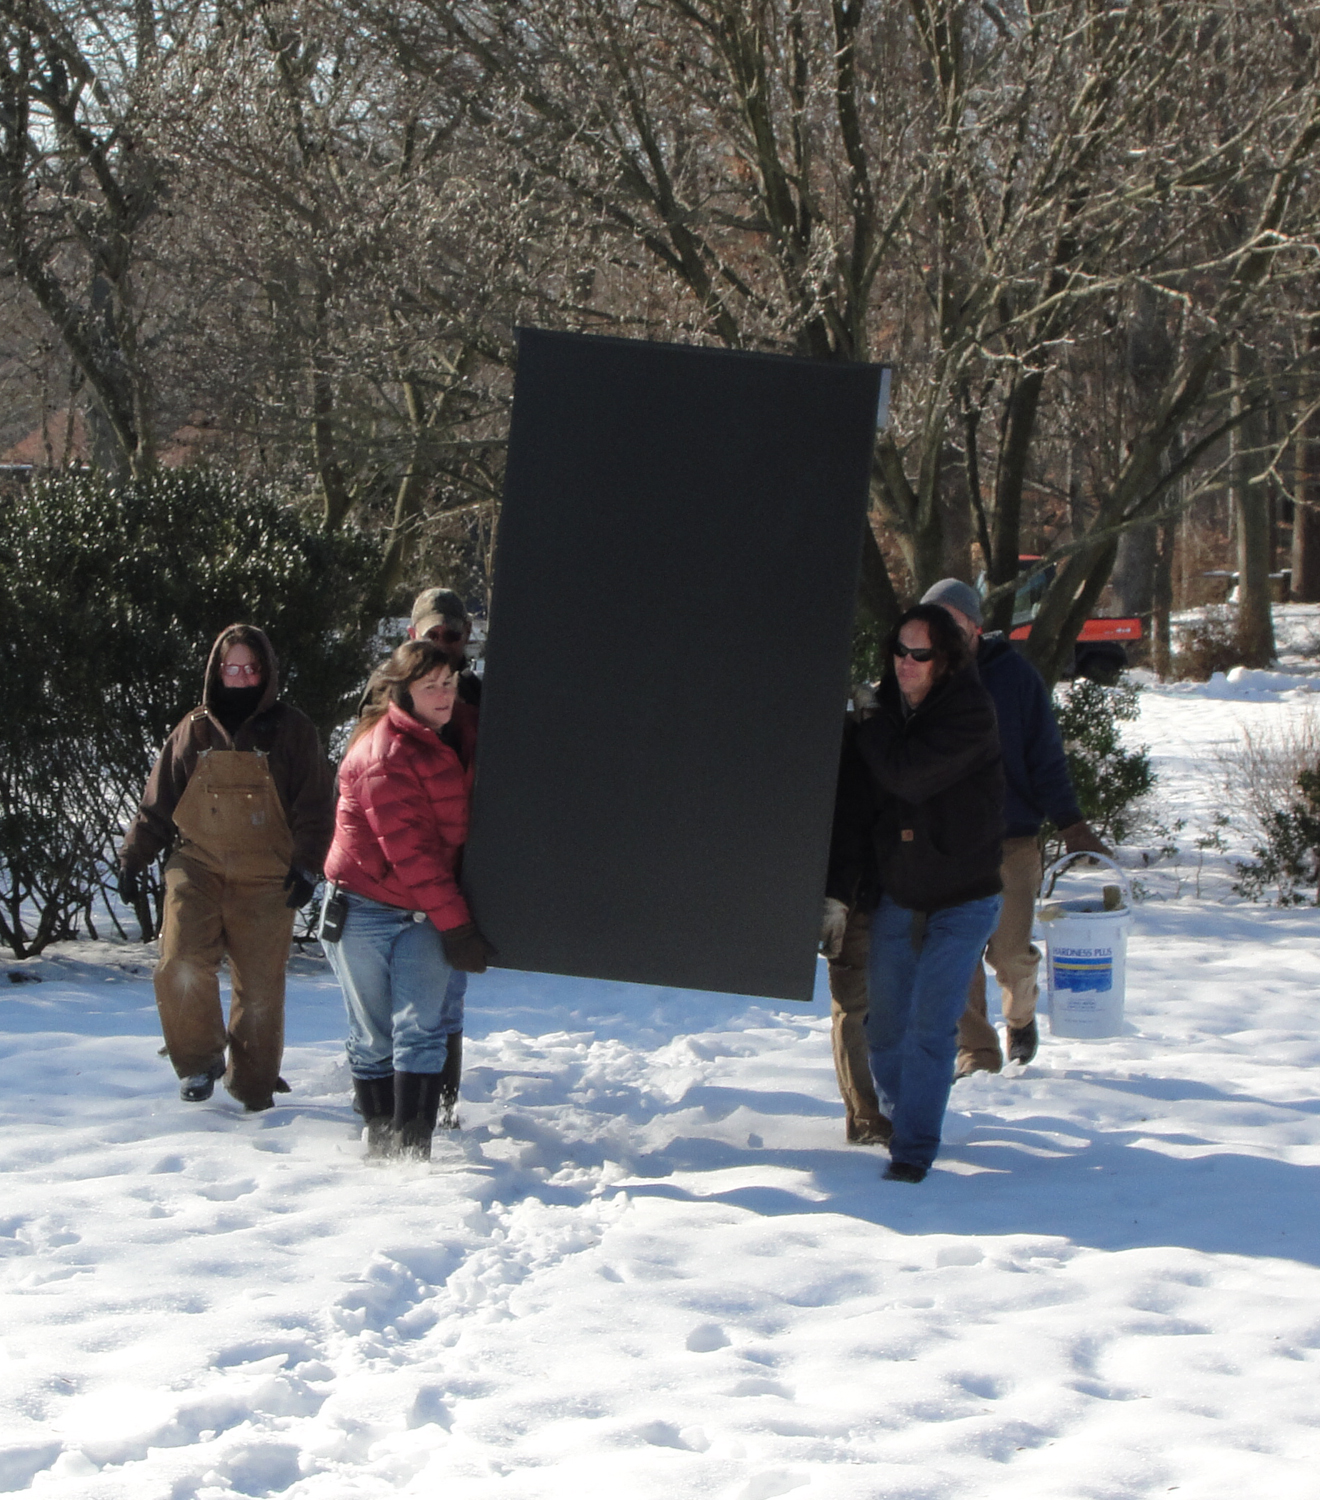 Garden team bringing out one of the iron lily enclosures, winter 2013